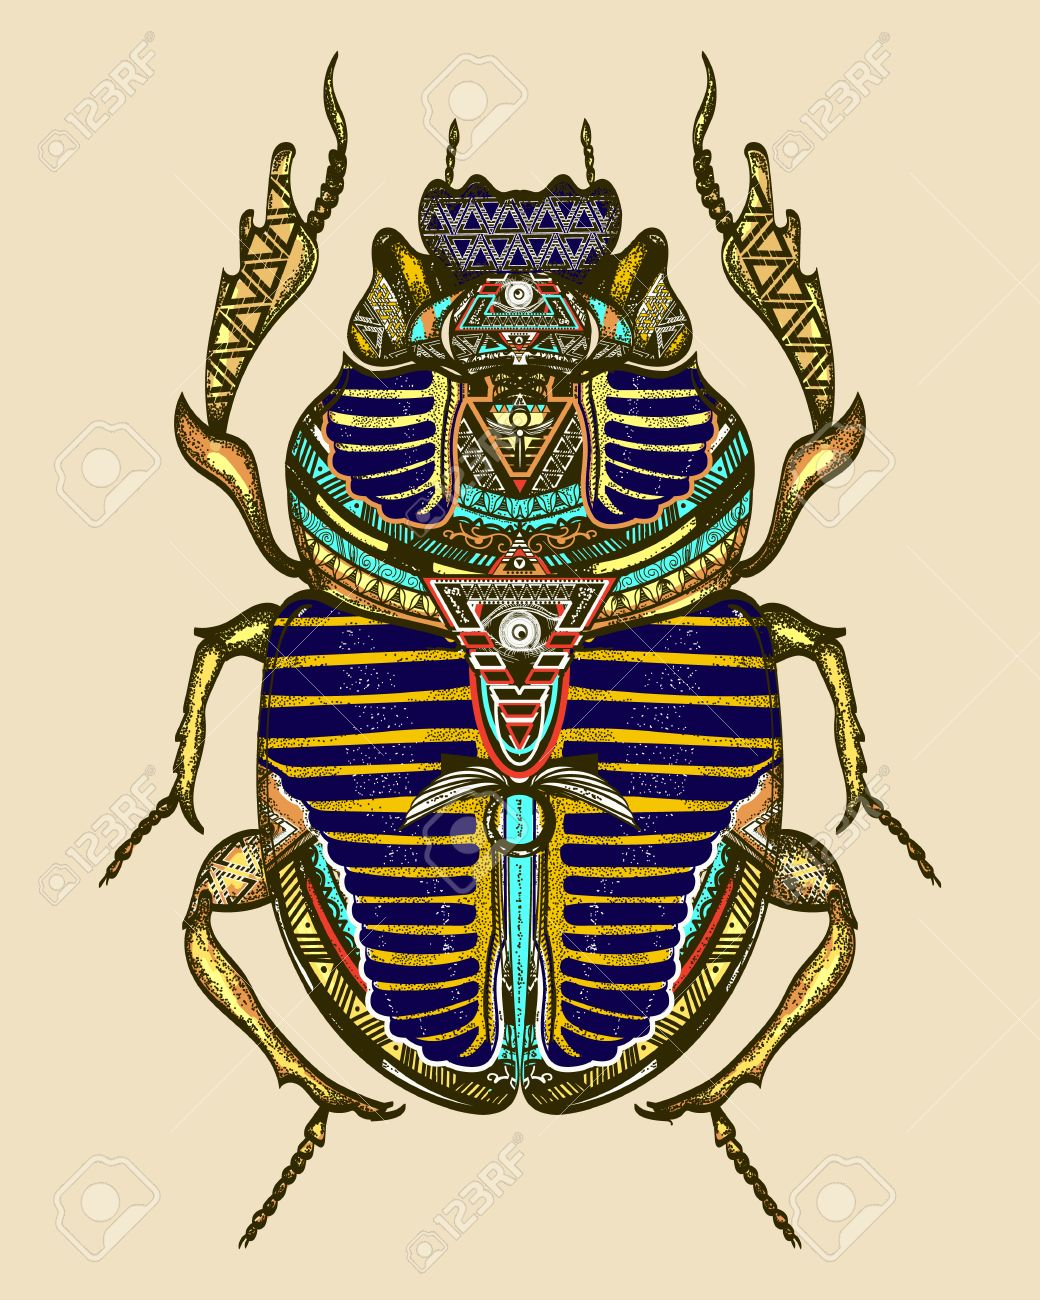 Gold scarab color tattoo ancient egypt art spiritual symbol gold scarab color tattoo ancient egypt art spiritual symbol of pharaoh god ra buycottarizona Image collections